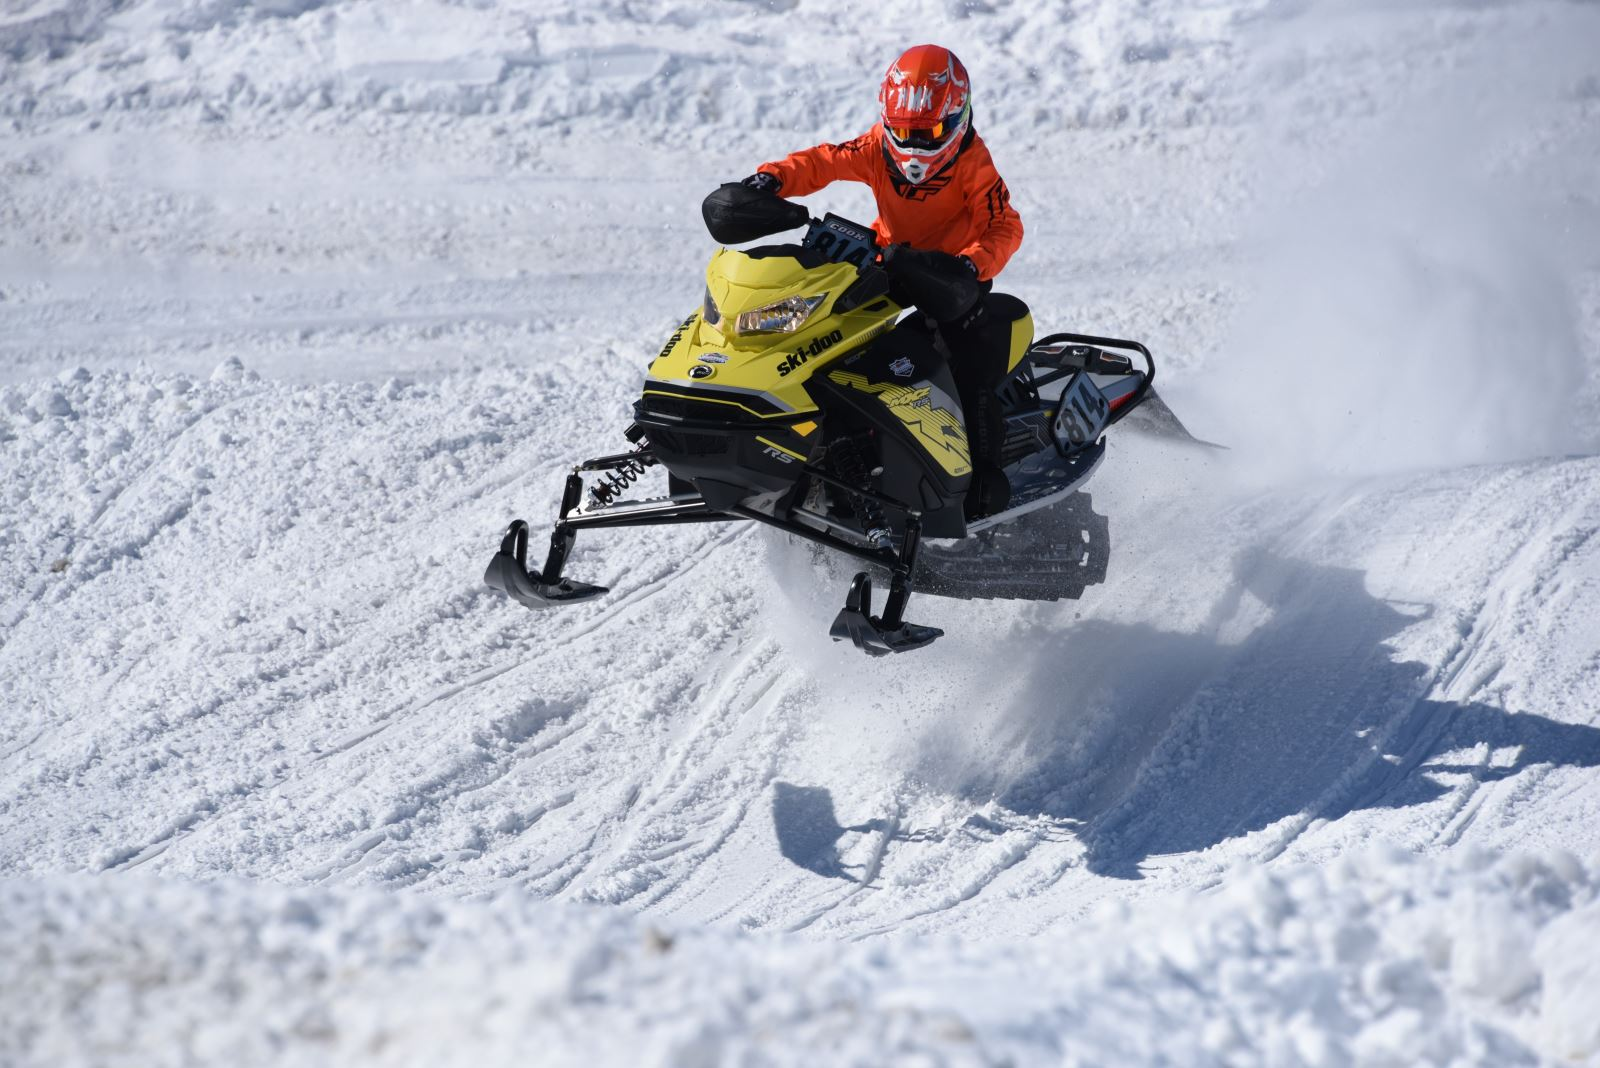 Day 1 Of Snocross Racing With Juniors 120s In West Yellowstone Snowest Magazine